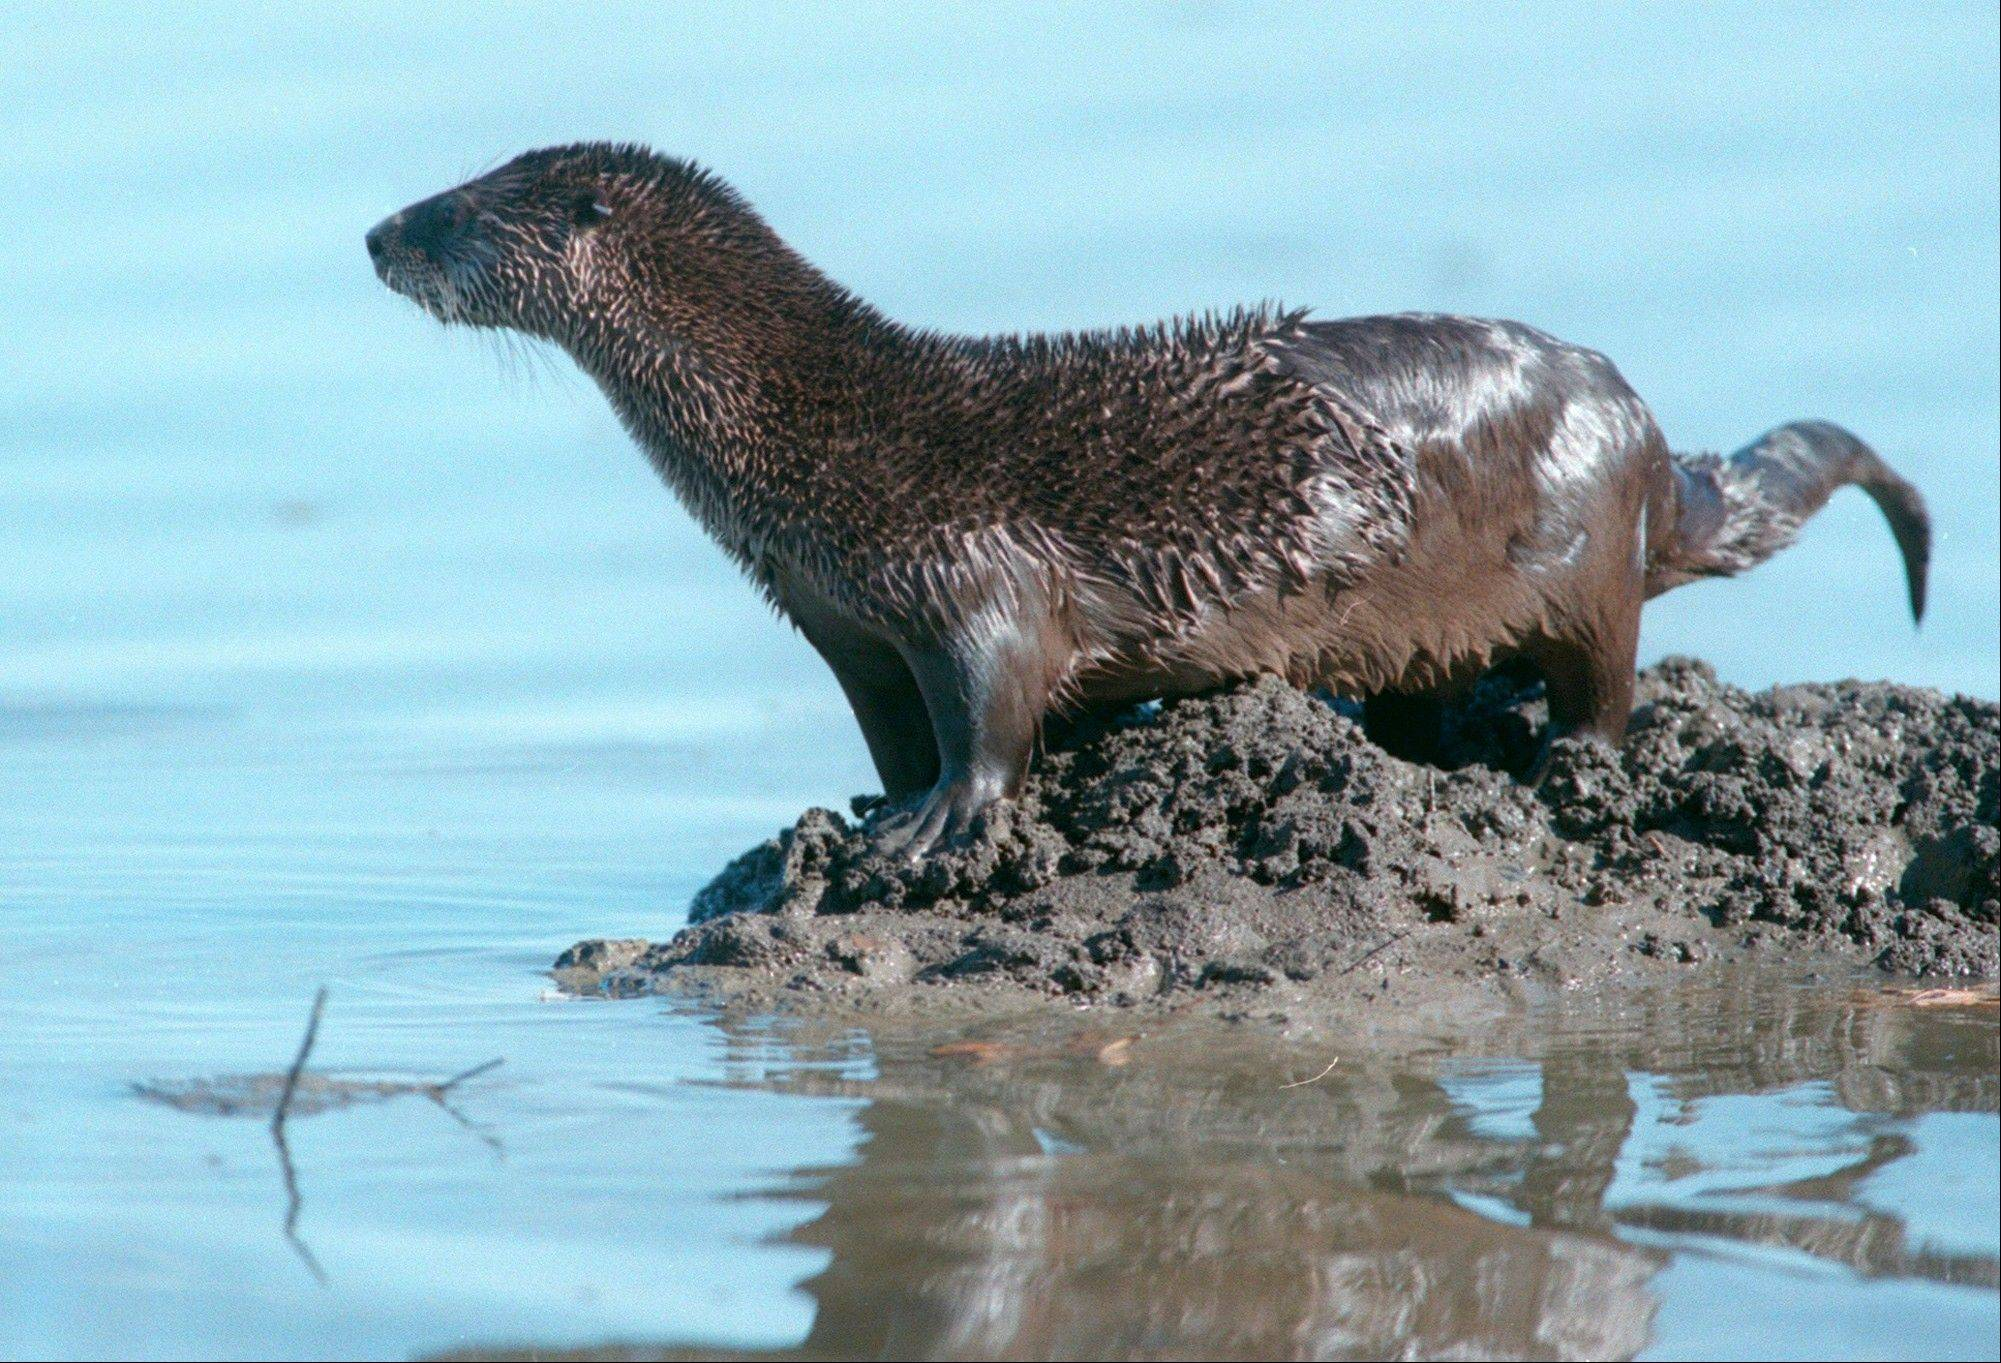 The Department of Natural Resources has determined a river otter harvest is now biologically sustainable, and trapping season will begin Nov. 5.